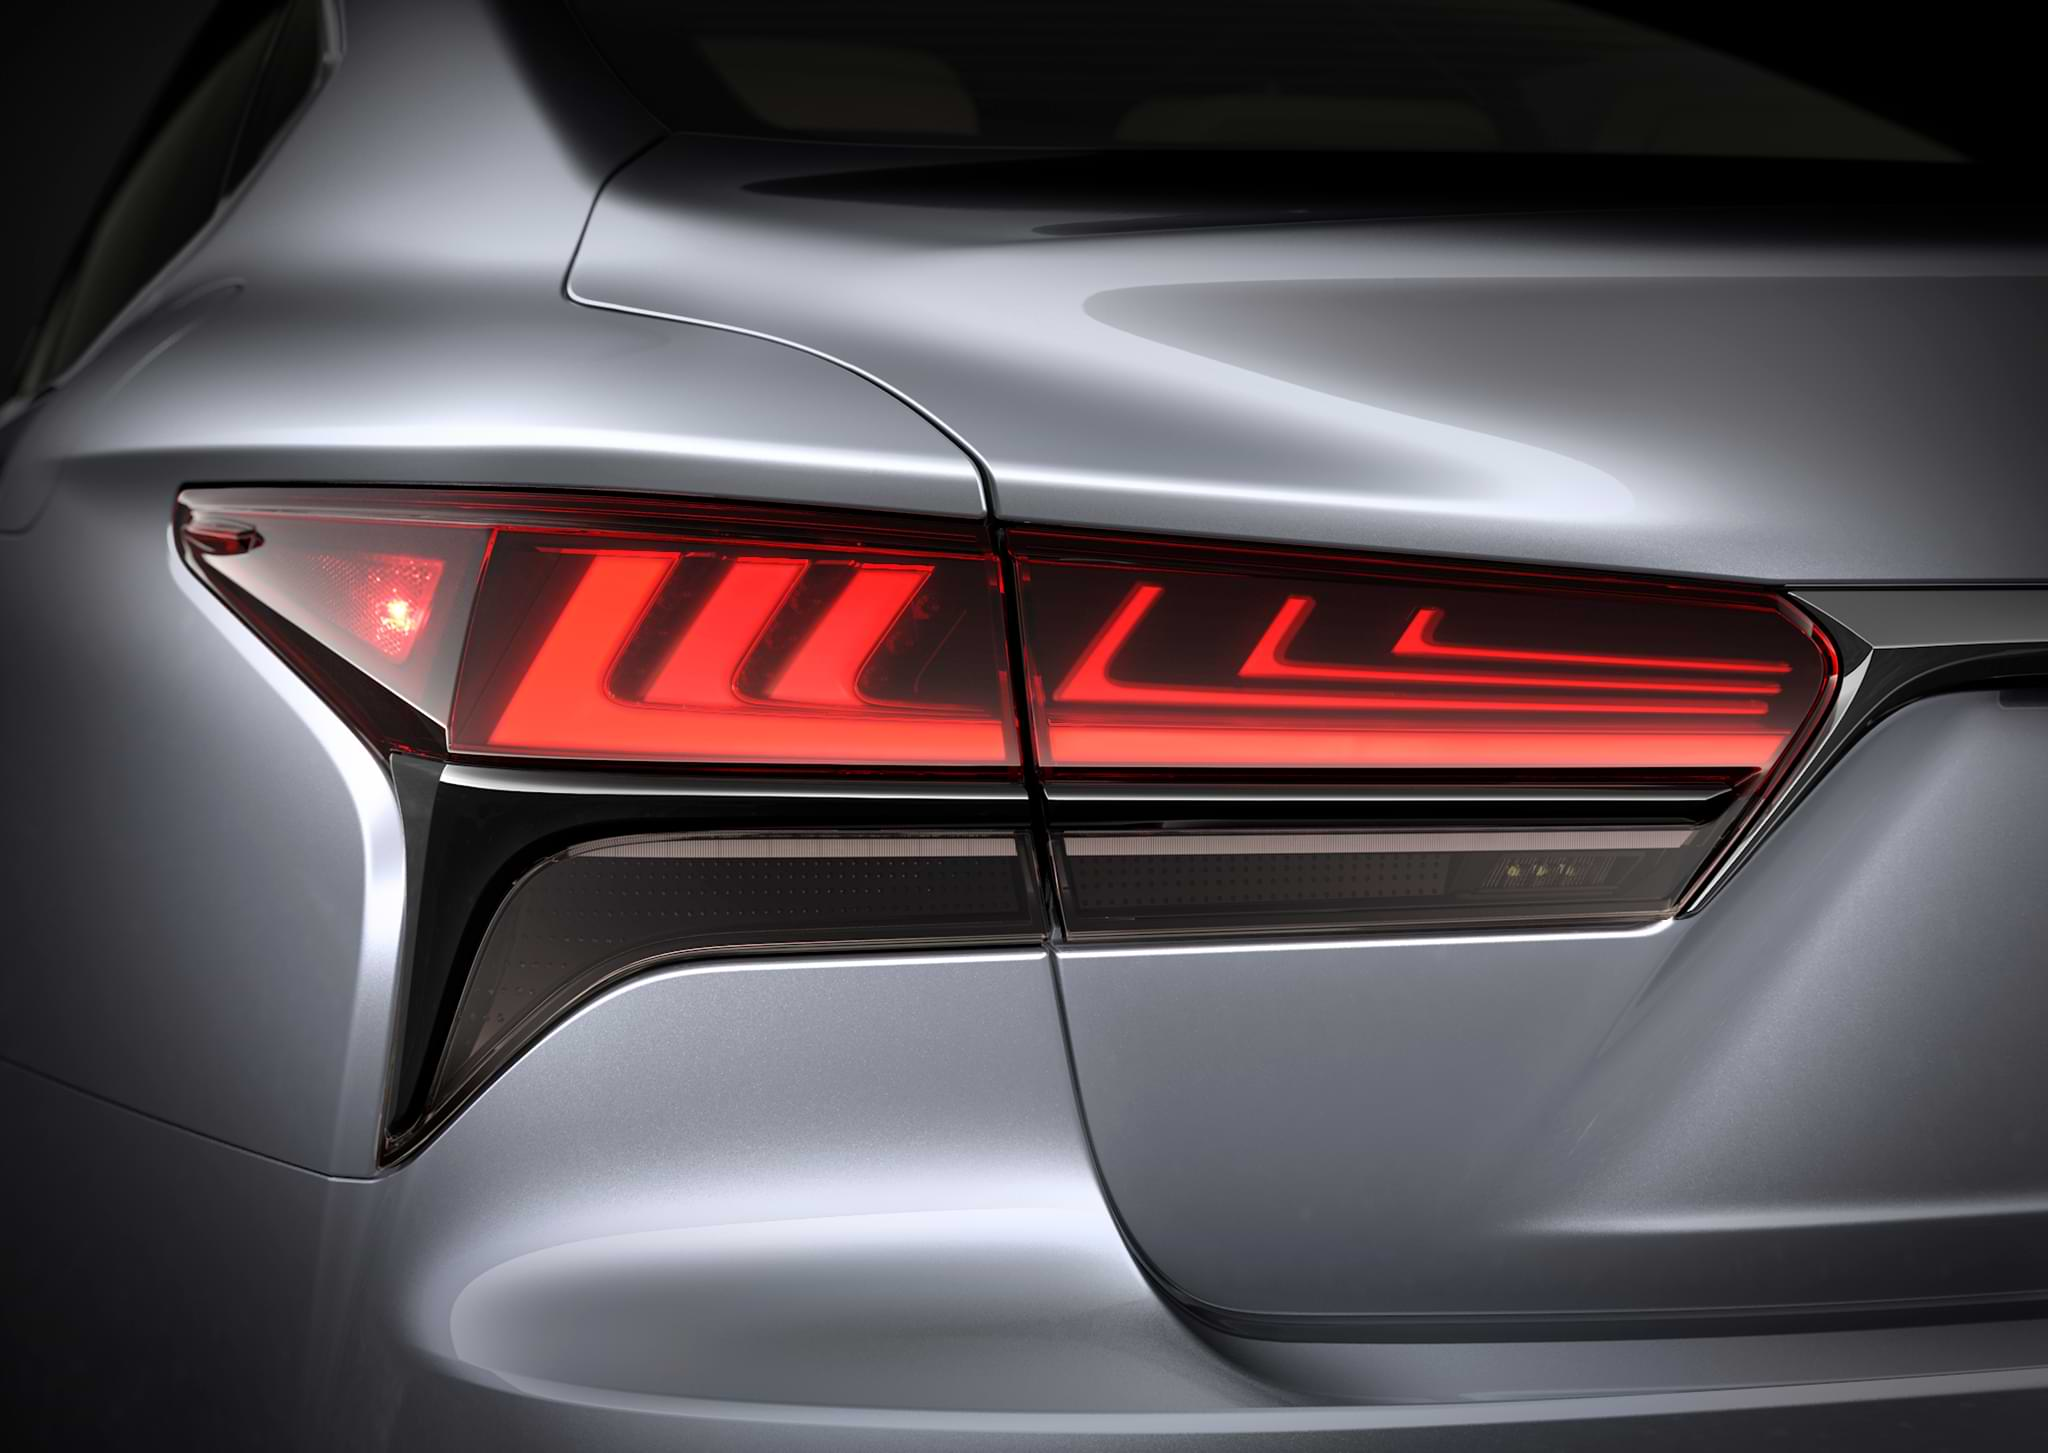 Lexus LS rear light